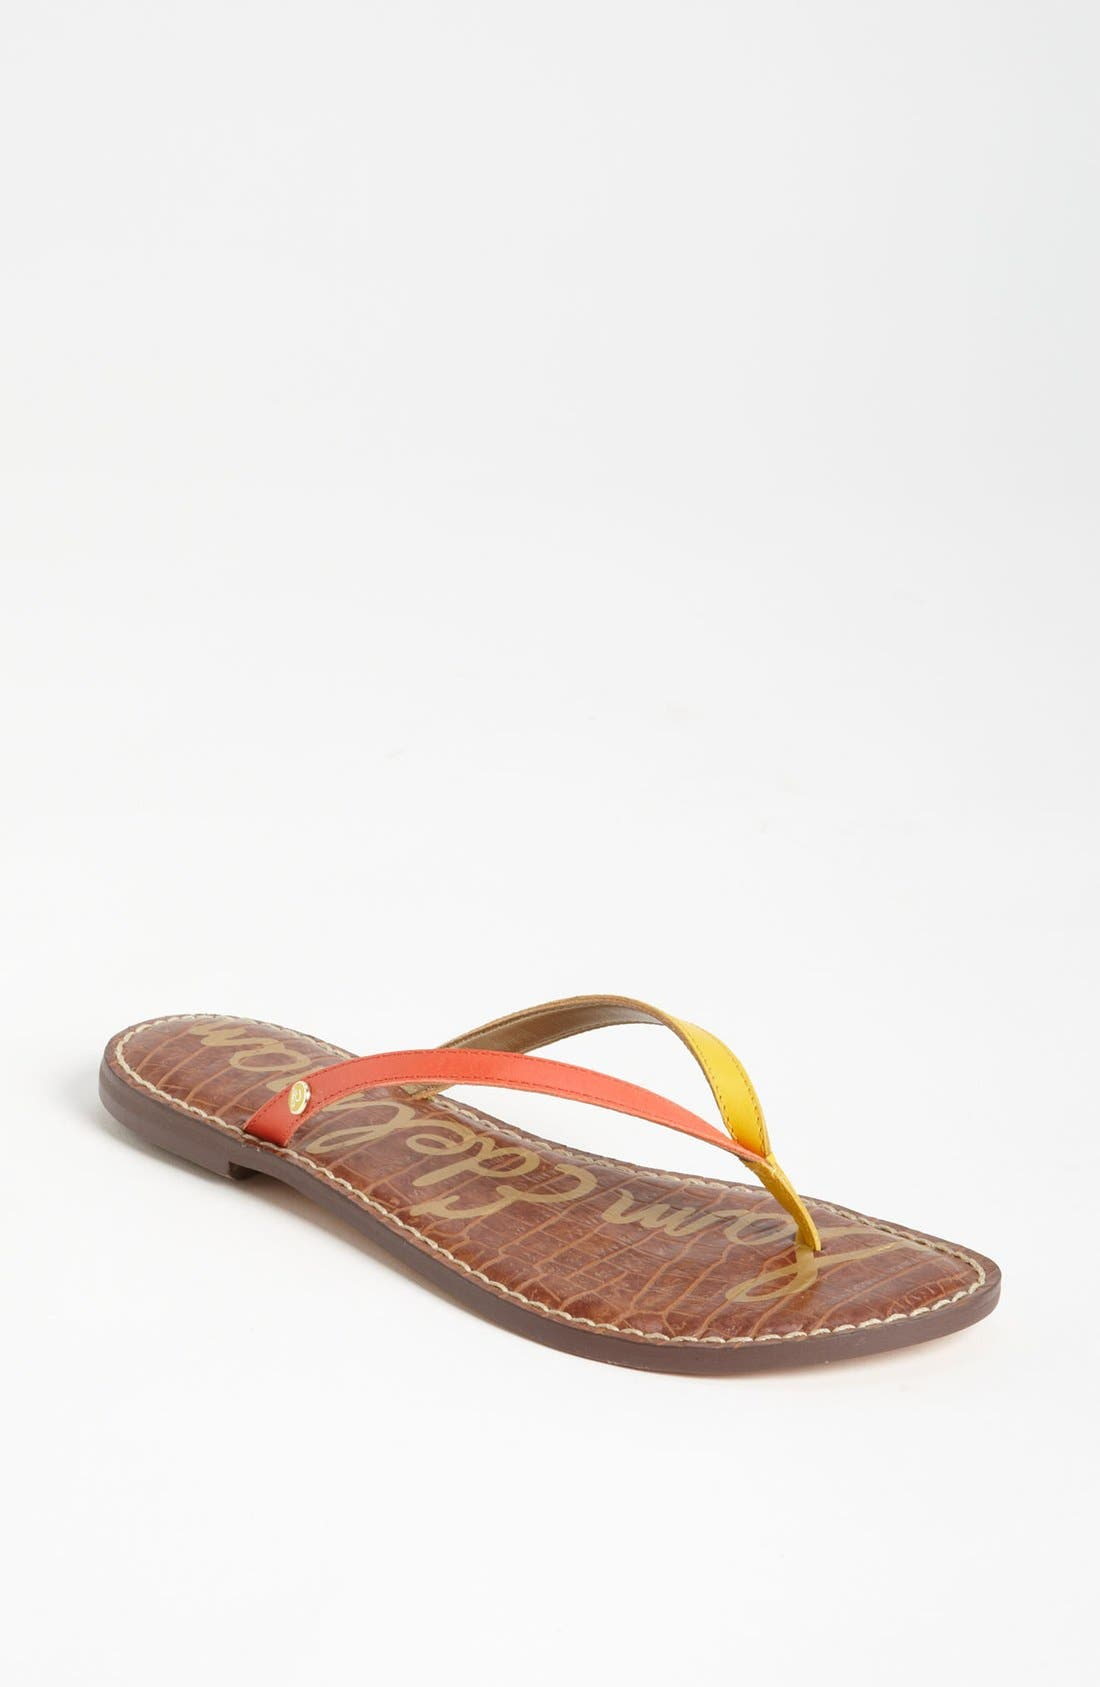 Alternate Image 1 Selected - Sam Edelman 'Gracie' Sandal